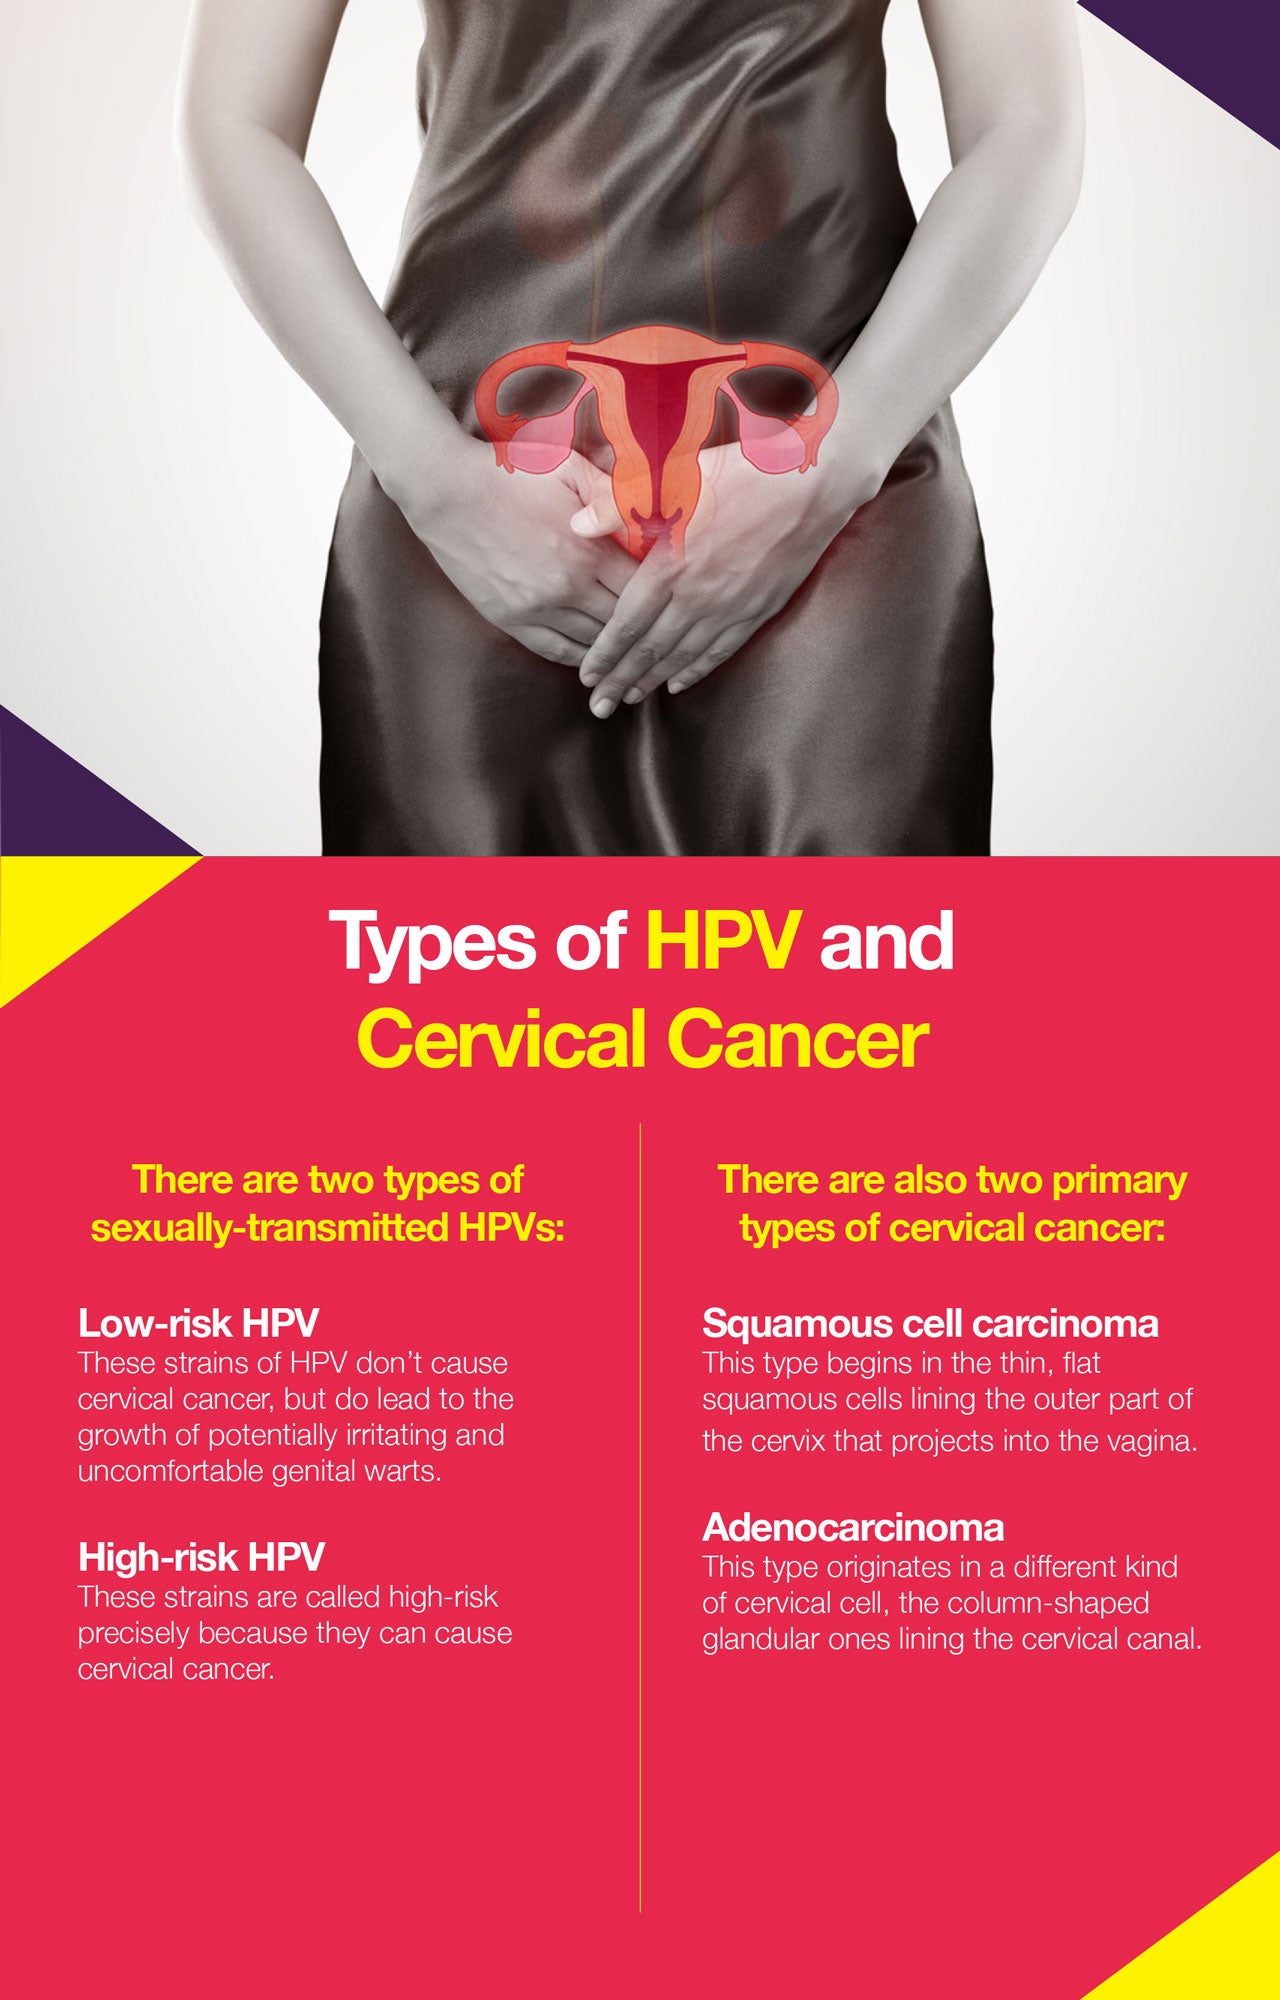 Here are the types of HPV and cervical cancers